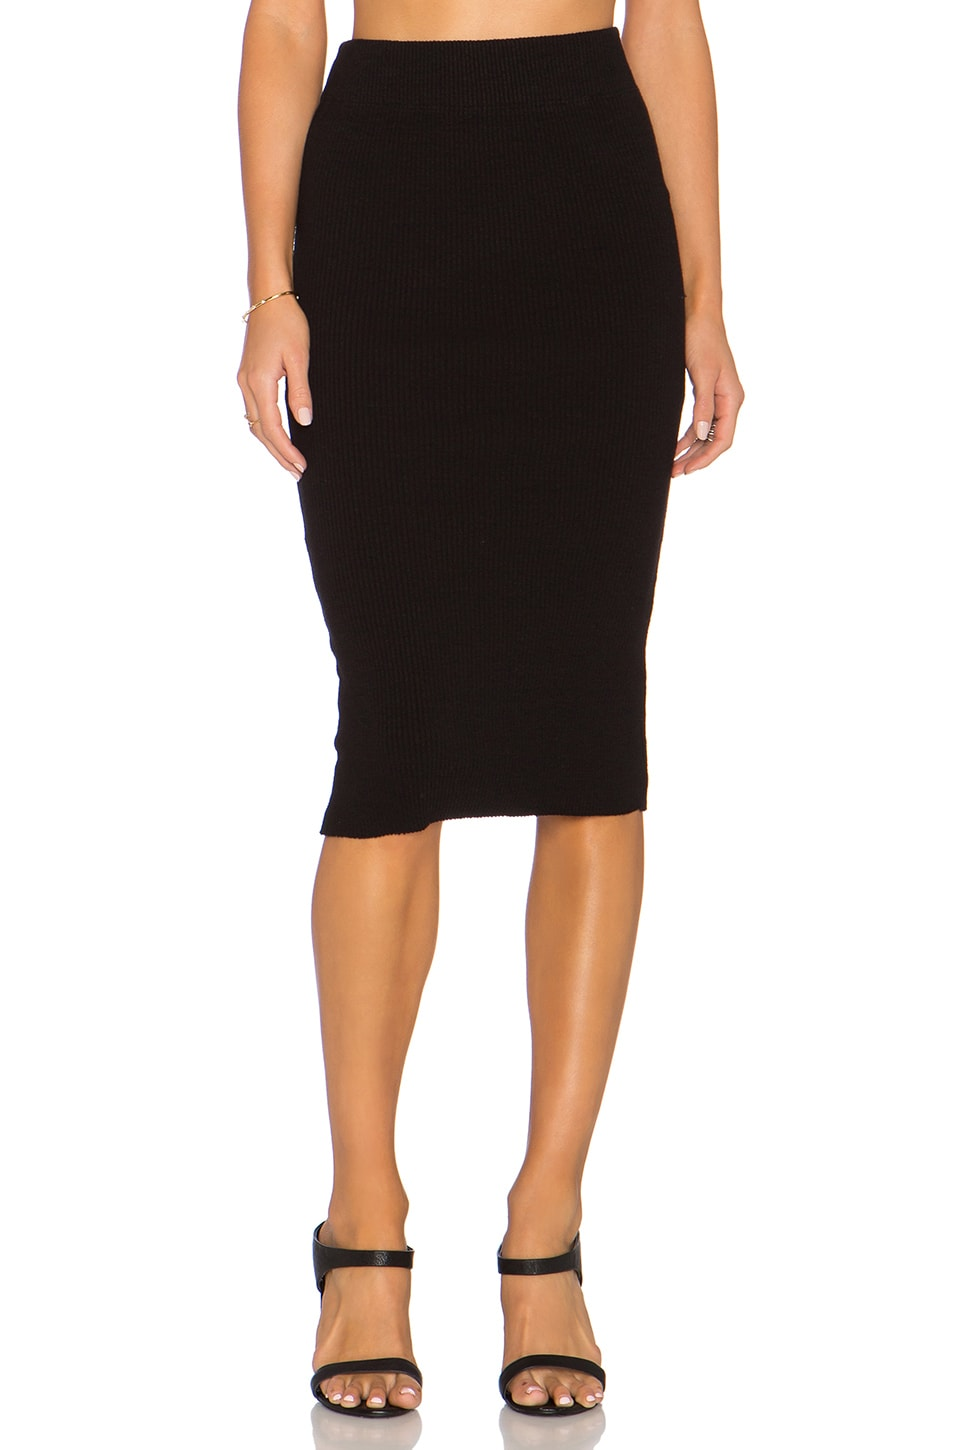 James Perse Heavy Rib Skinny Skirt in Black | REVOLVE